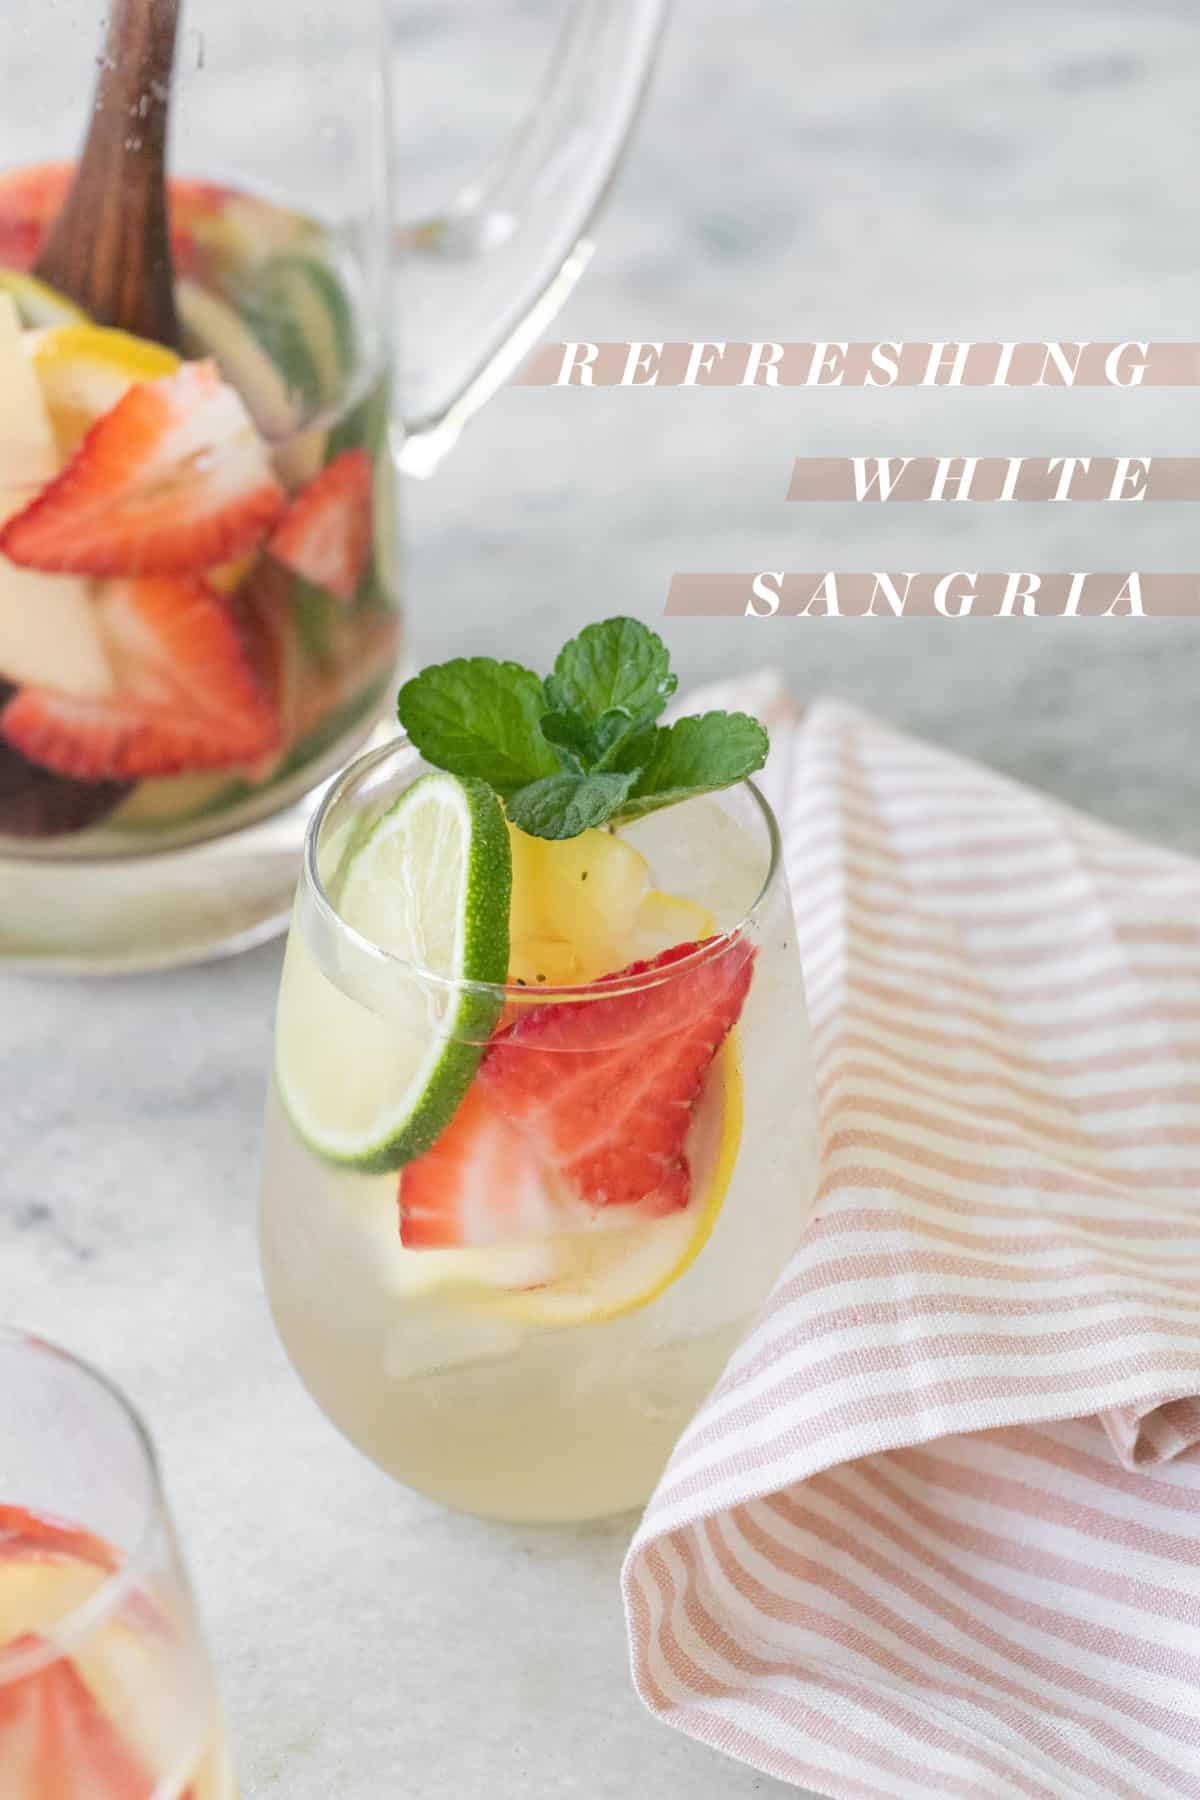 White wine sangria recipe with graphic on the photo.